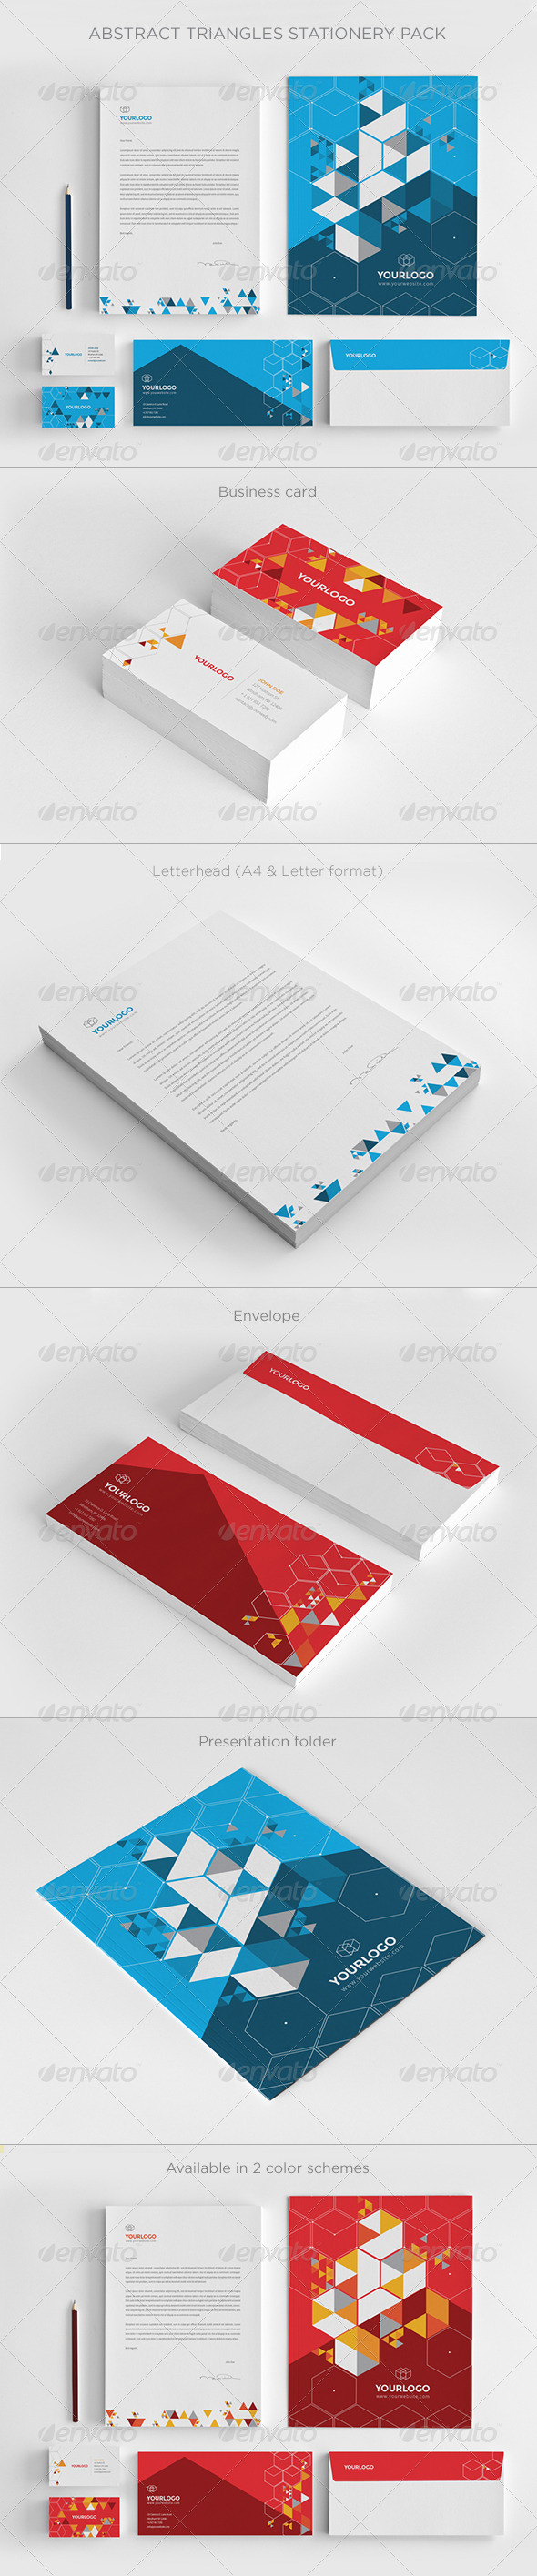 Abstract Triangles Stationery Pack - Stationery Print Templates